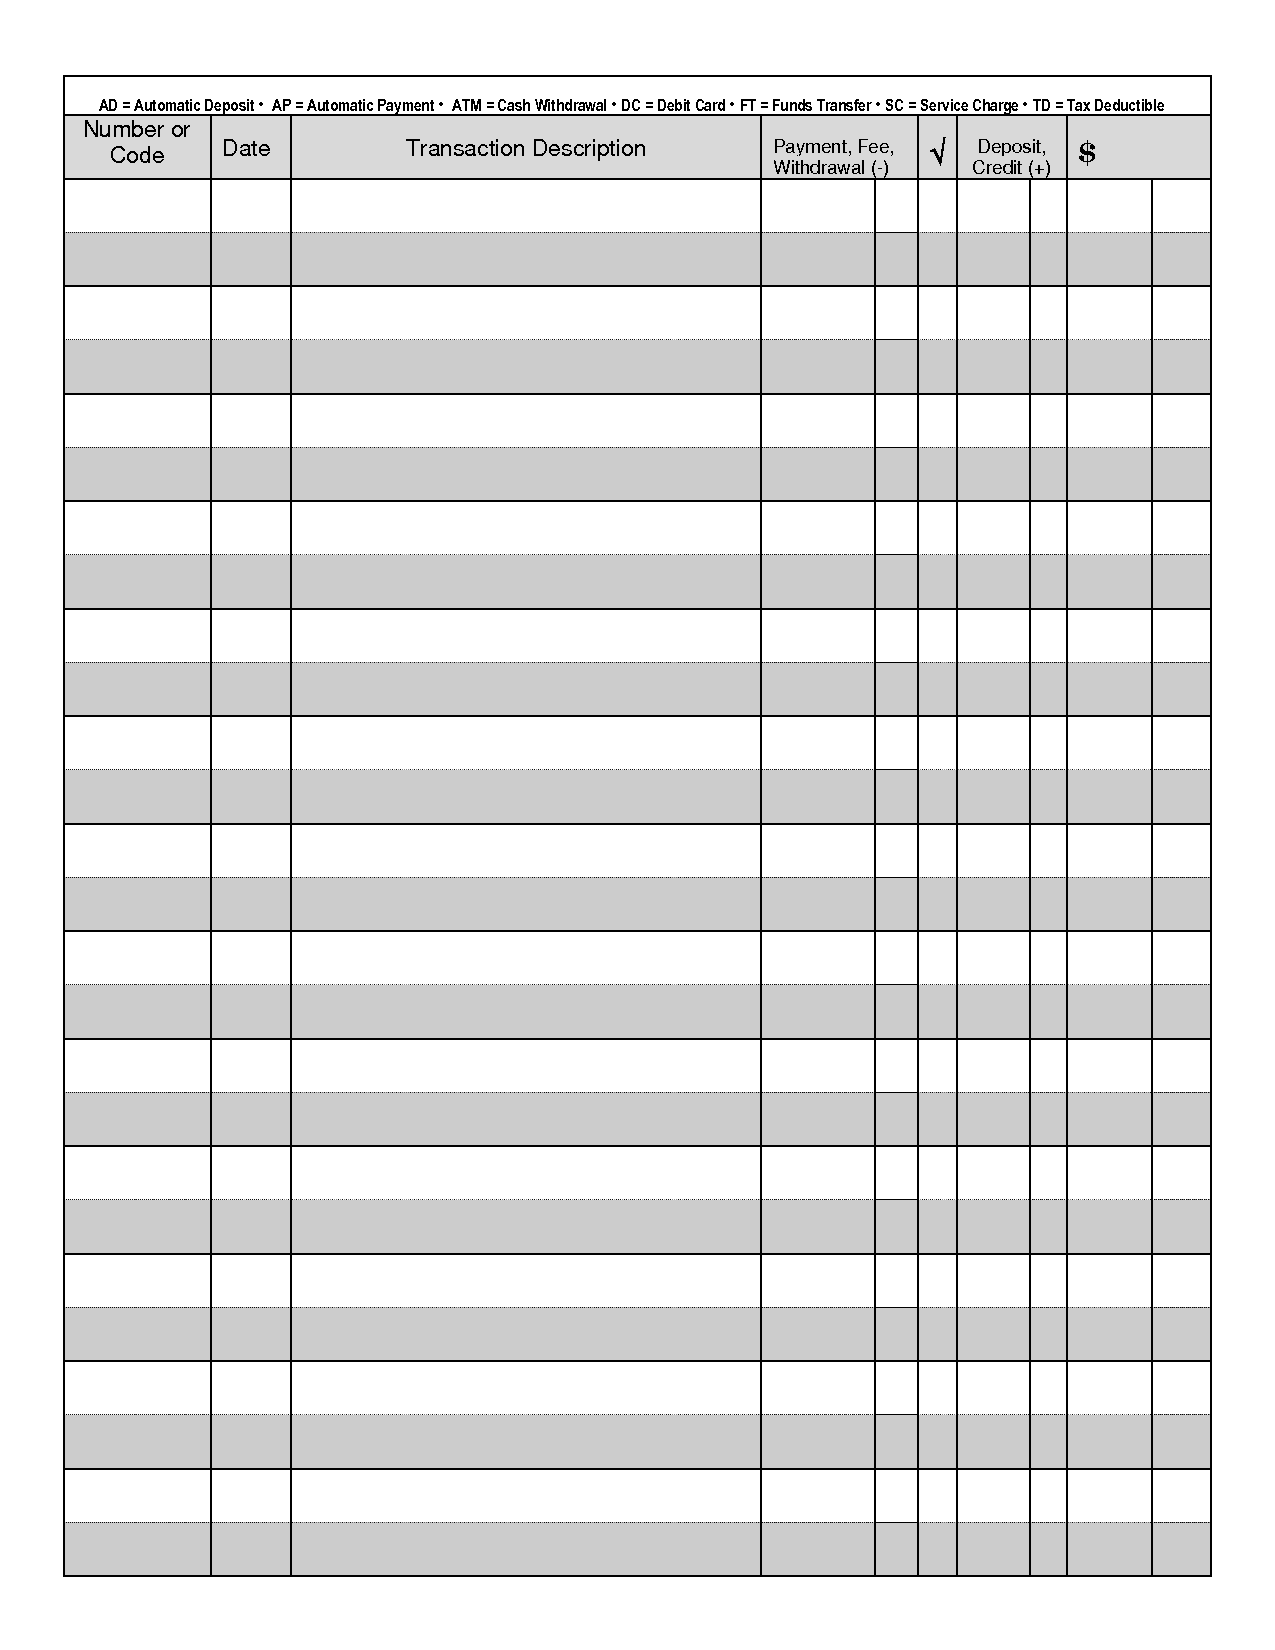 Free Printable Payroll Forms White Lie Essay  Dbca781cf0f26c43178be8b3c355f41d Free Printable Payroll Formshtml